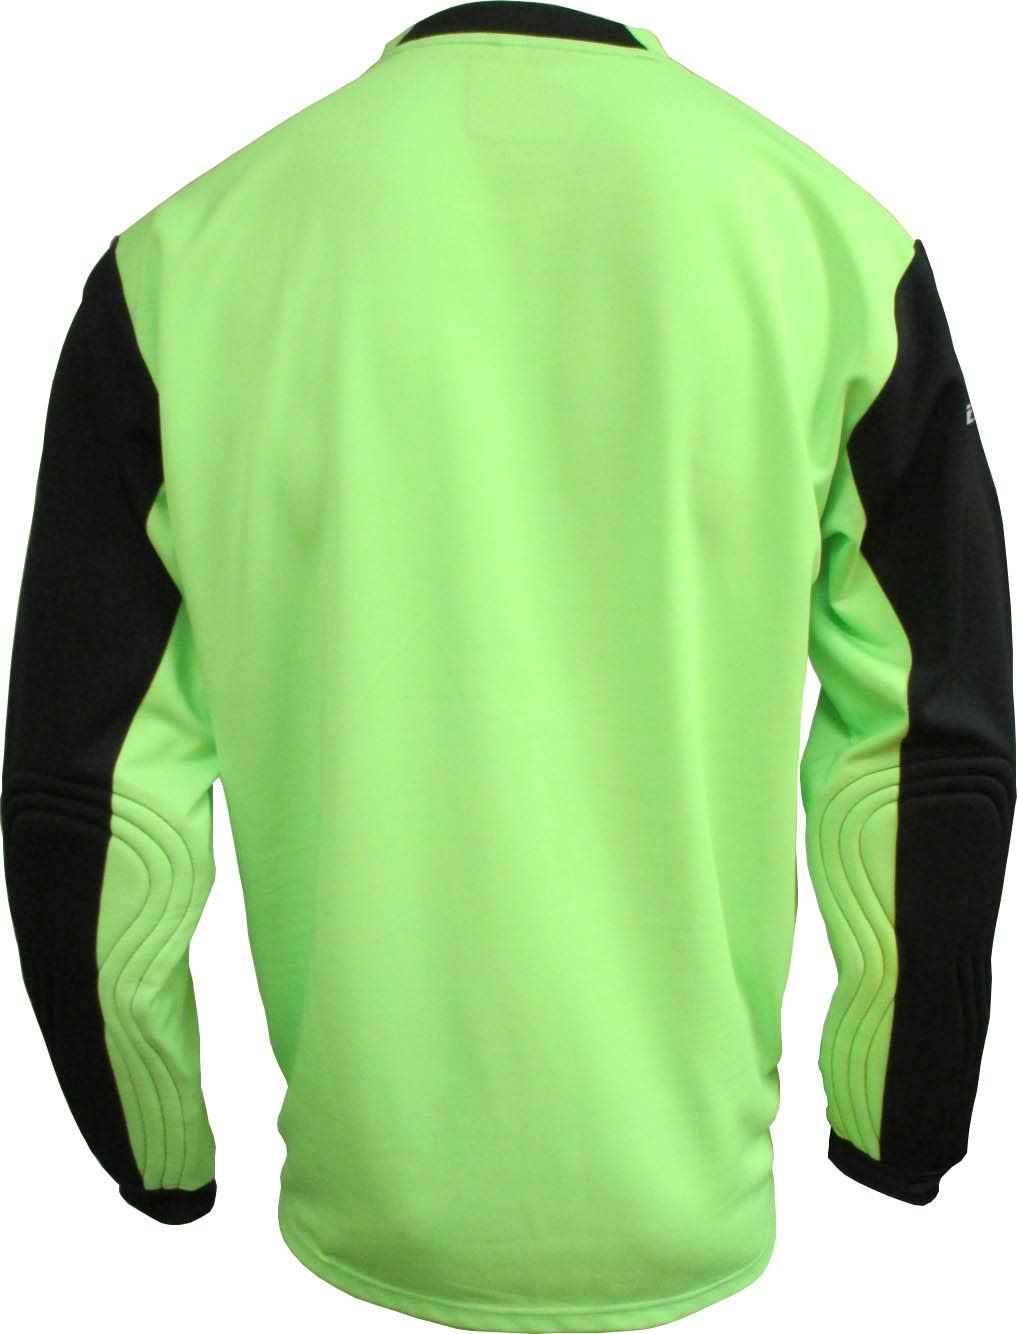 Vizari Vallejo Goalkeeper Jersey 60040-am-P